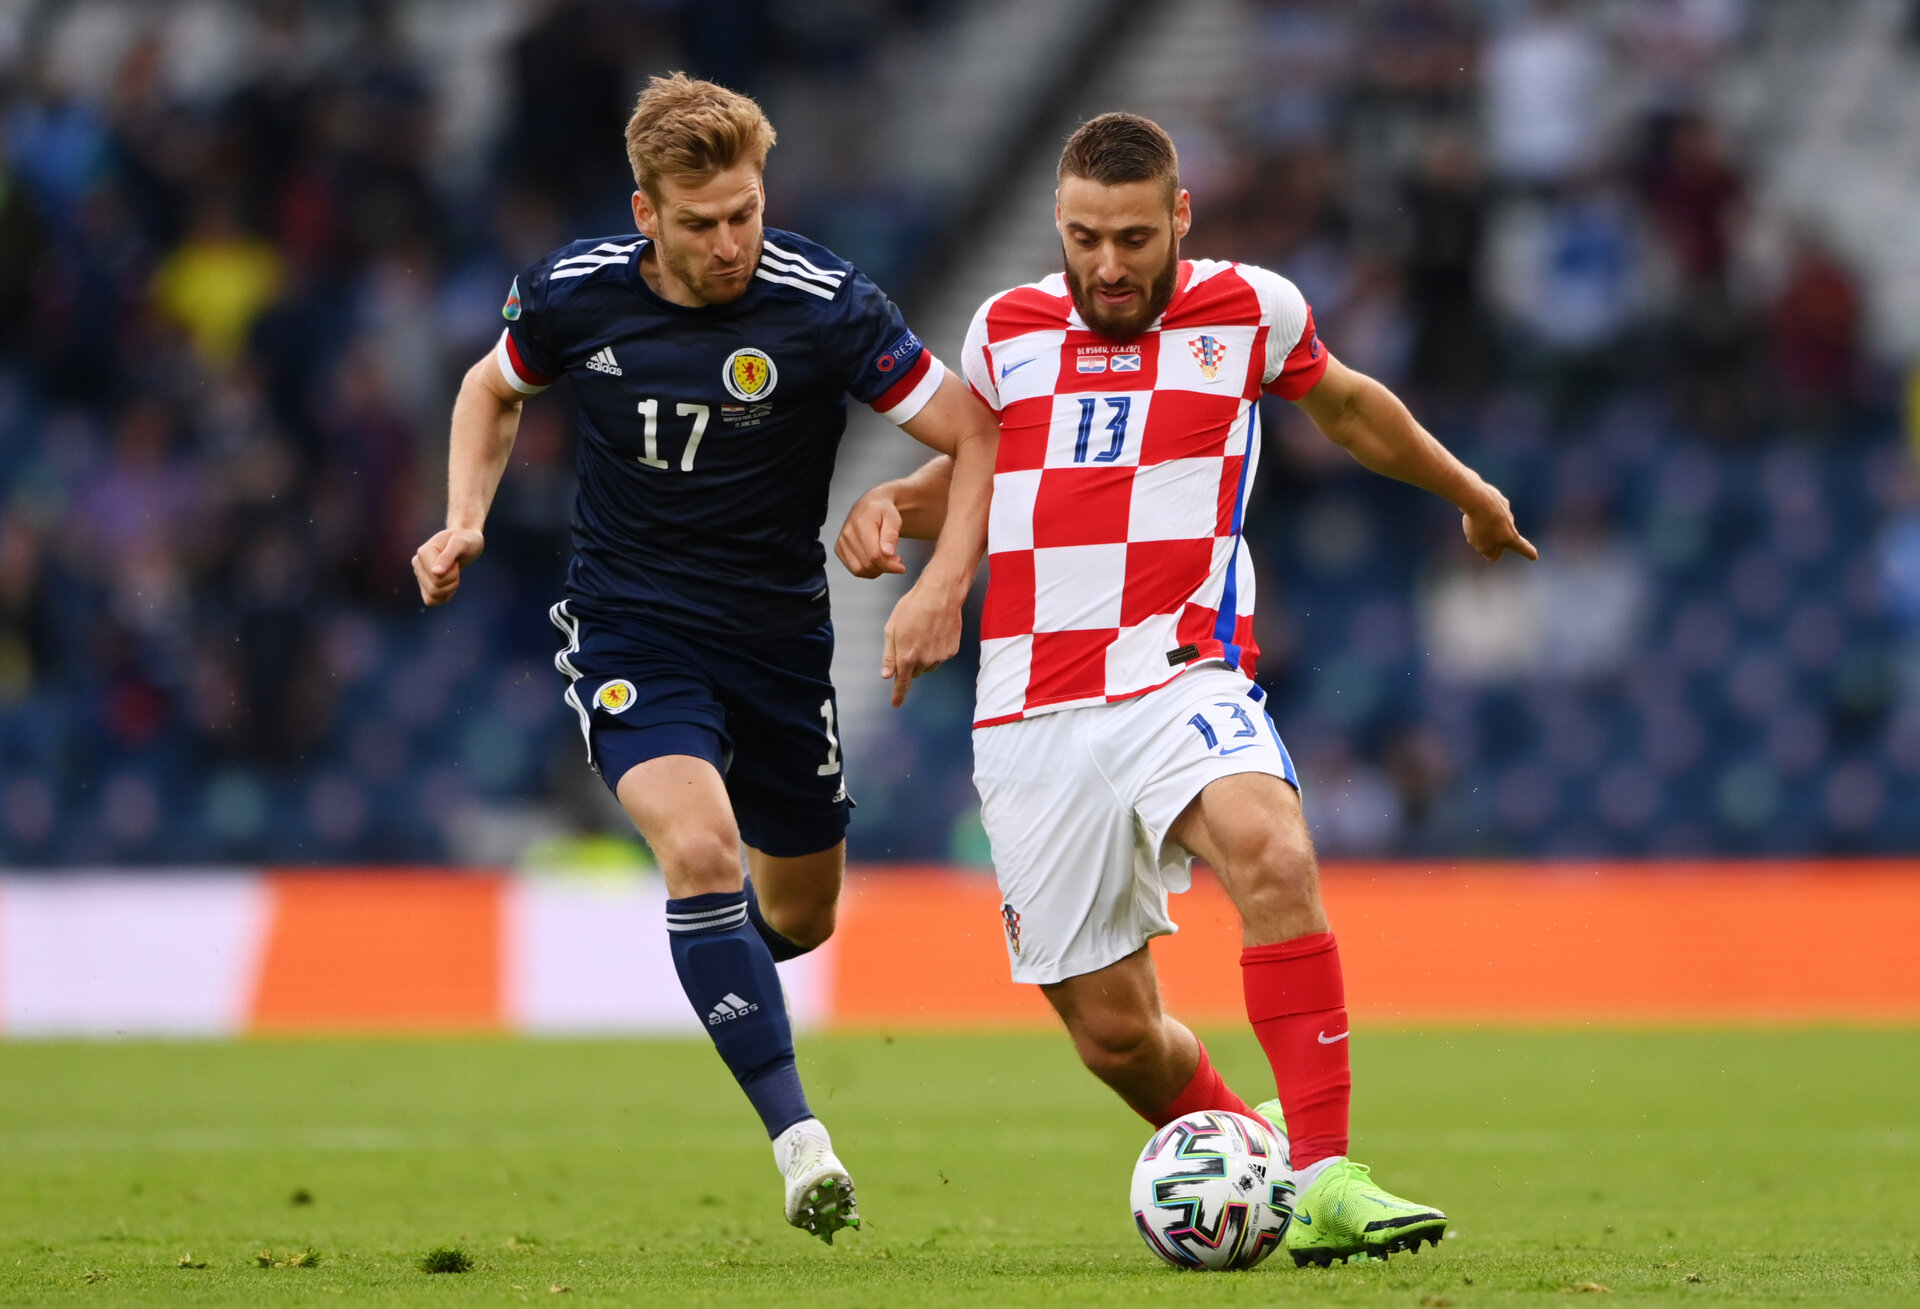 GLASGOW, SCOTLAND - JUNE 22: Nikola Vlasic of Croatia is closed down by Stuart Armstrong of Scotland during the UEFA Euro 2020 Championship Group D match between Croatia and Scotland at Hampden Park on June 22, 2021 in Glasgow, Scotland. (Photo by Stu Forster/Getty Images)